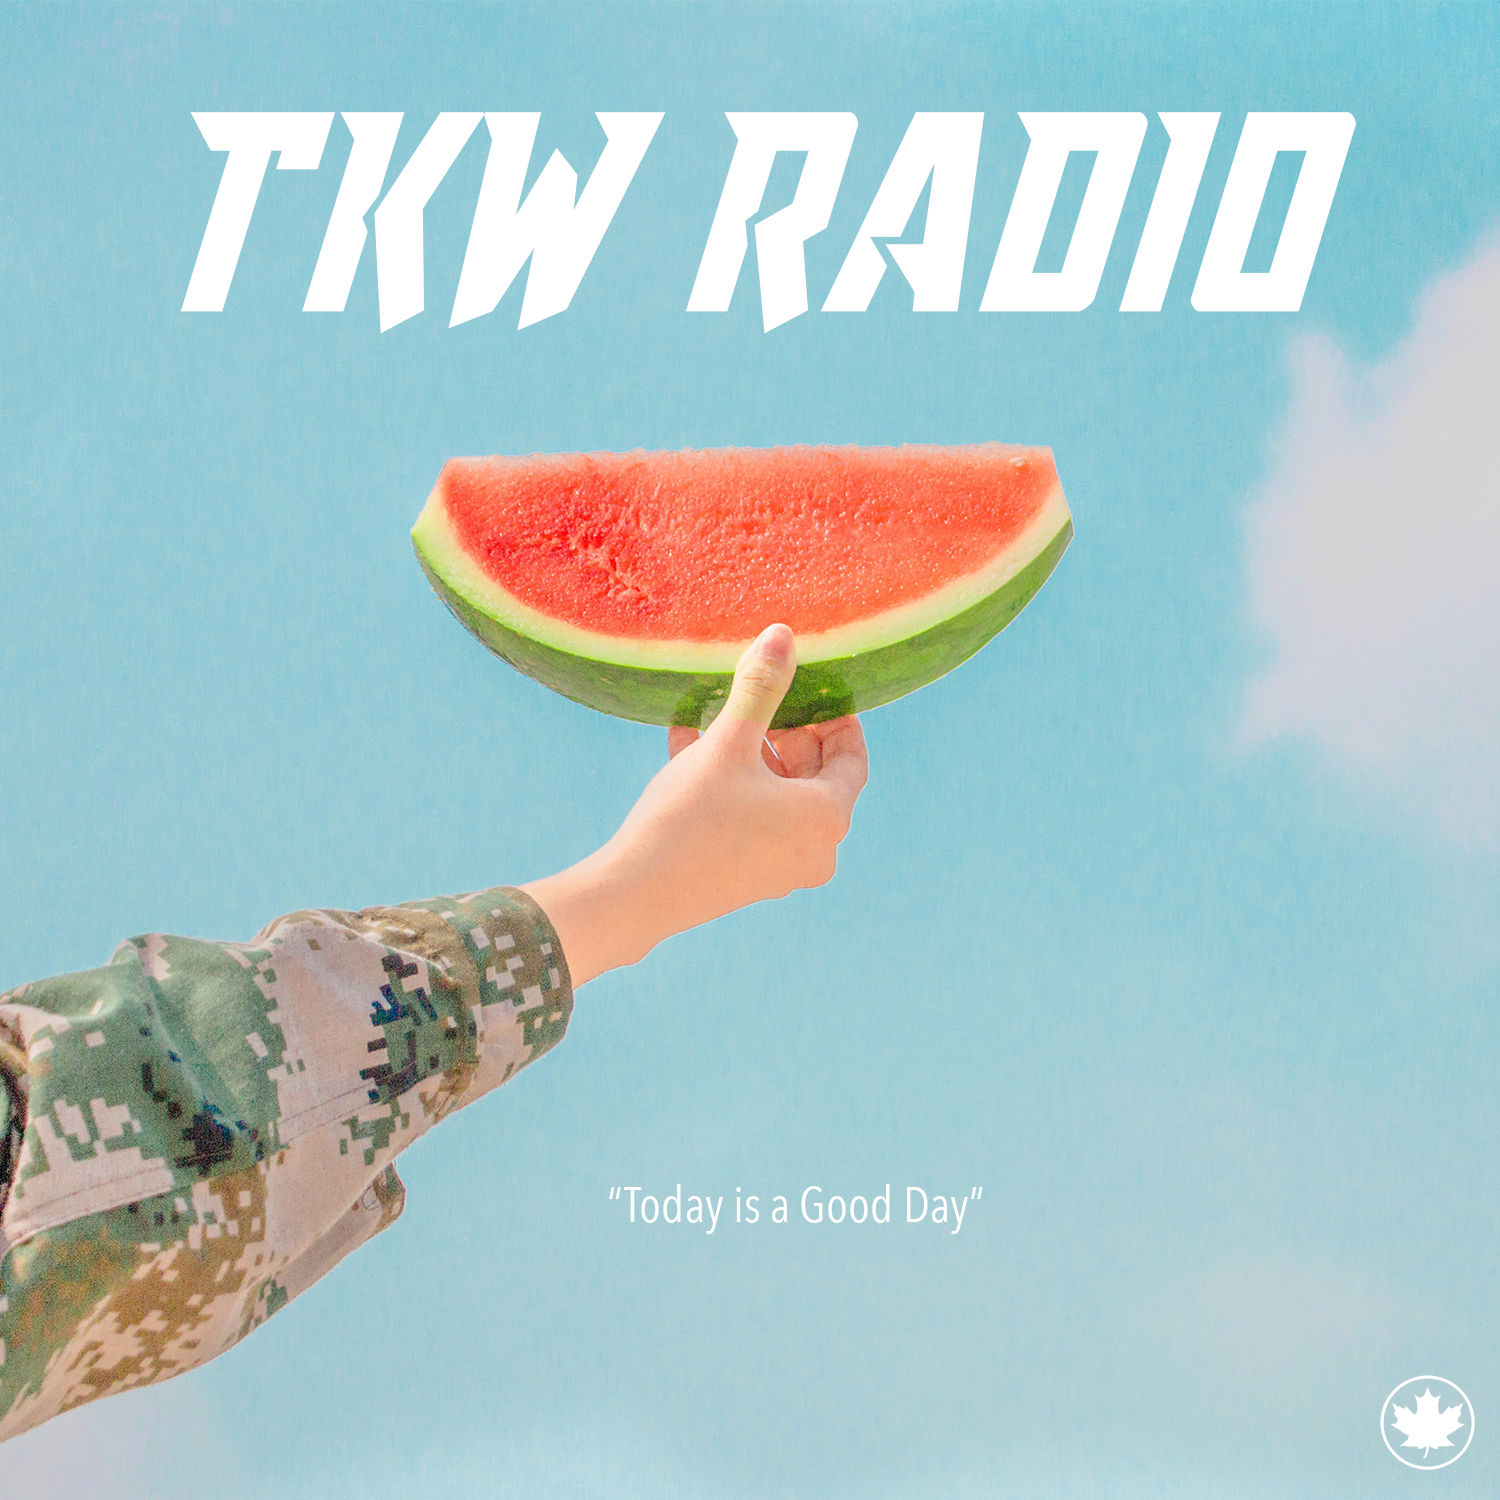 TODAY IS A GOOD DAY (TKW RADIO)